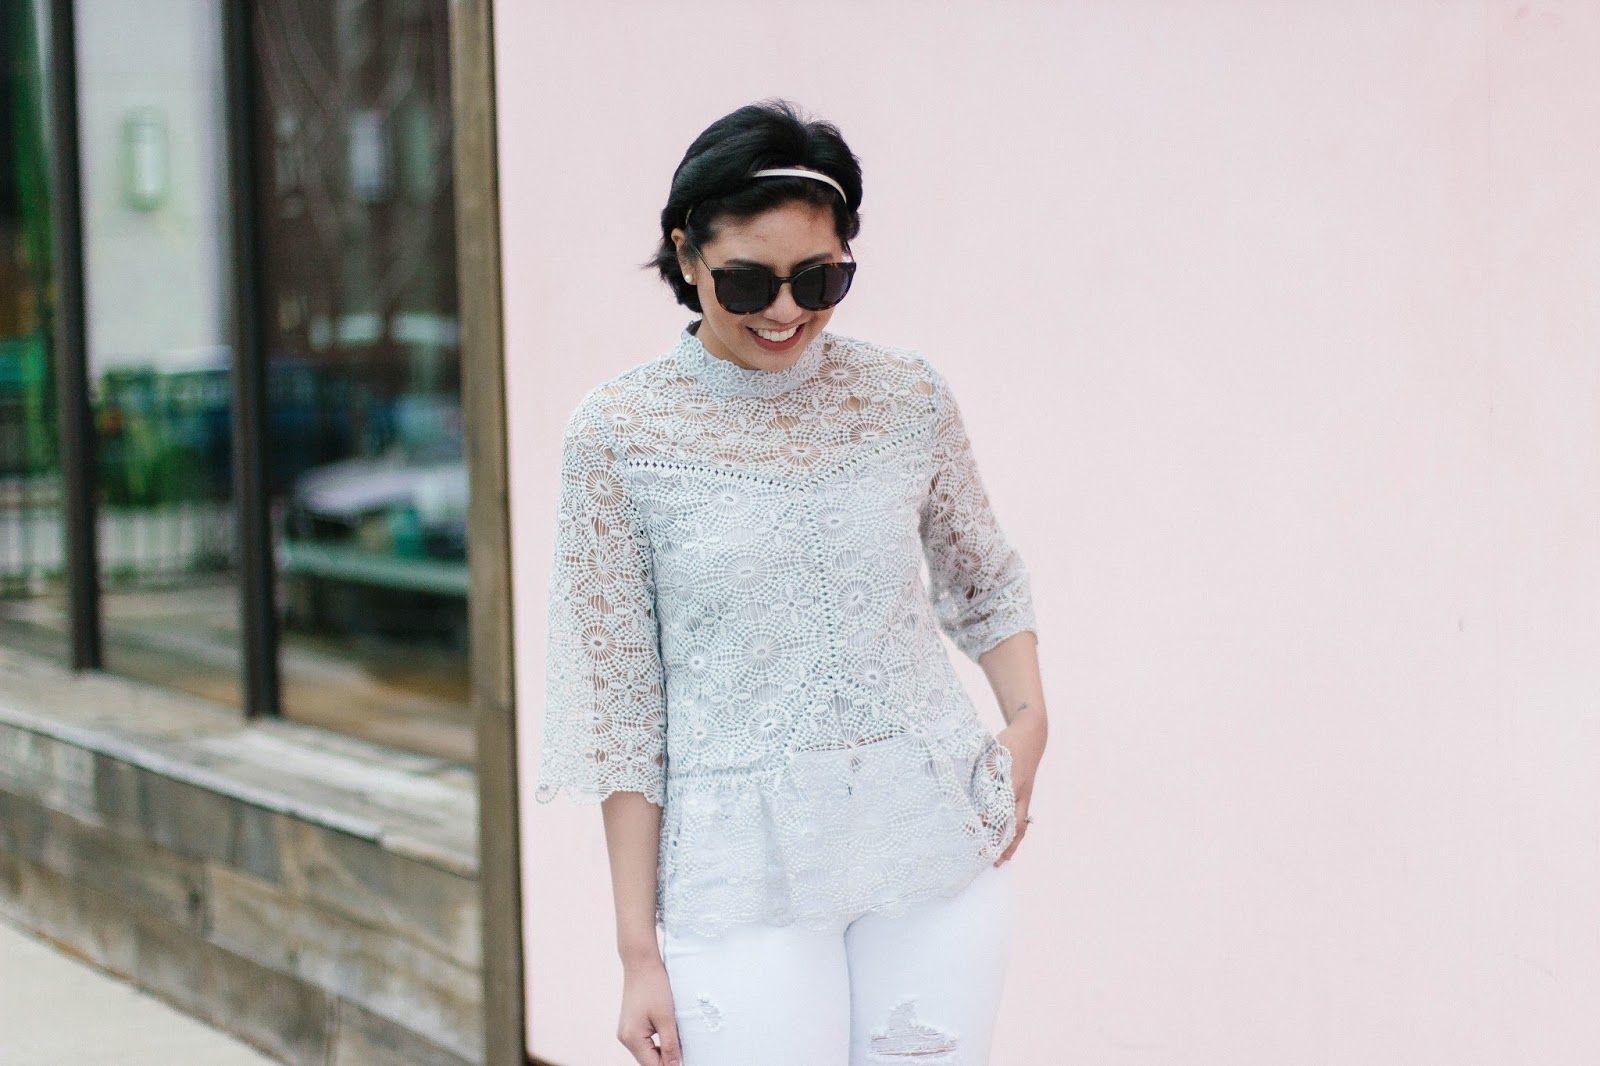 How wearing white distressed jeans and a lace top is perfect for a Spring outfit.